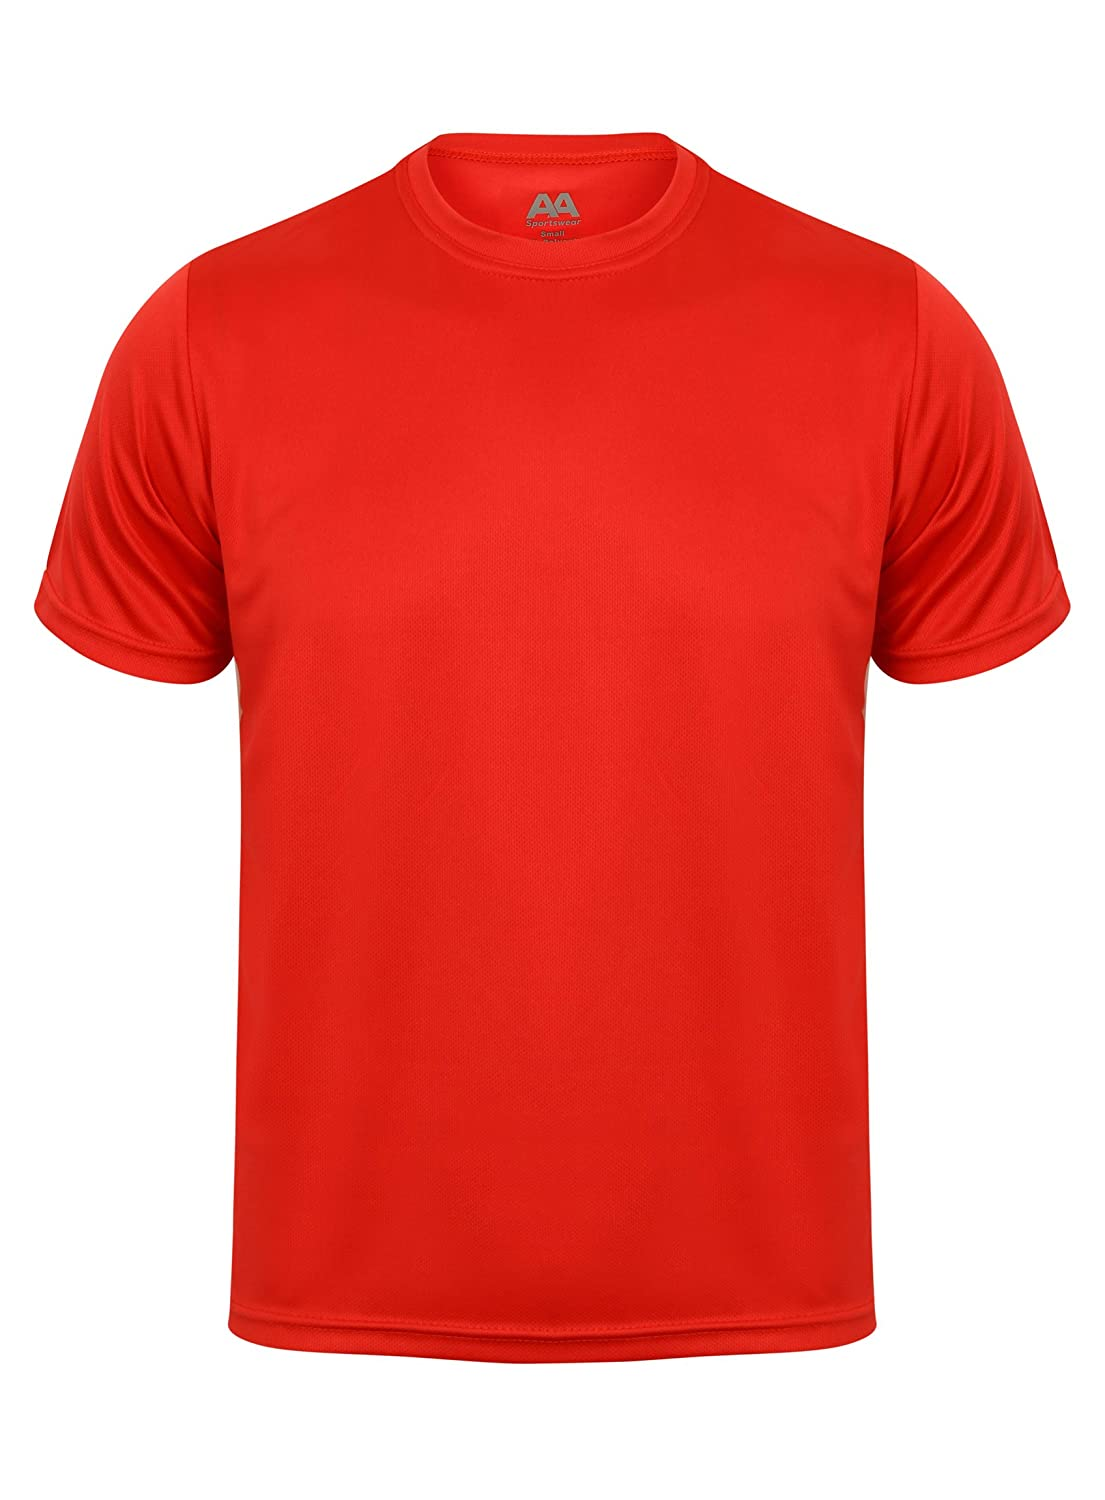 MENS T-SHIRT BREATHABLE PERFORMANCE GYM RUNNING SPORTS FITNESS ACTIVE TOP TEE AA SPORTSWEAR